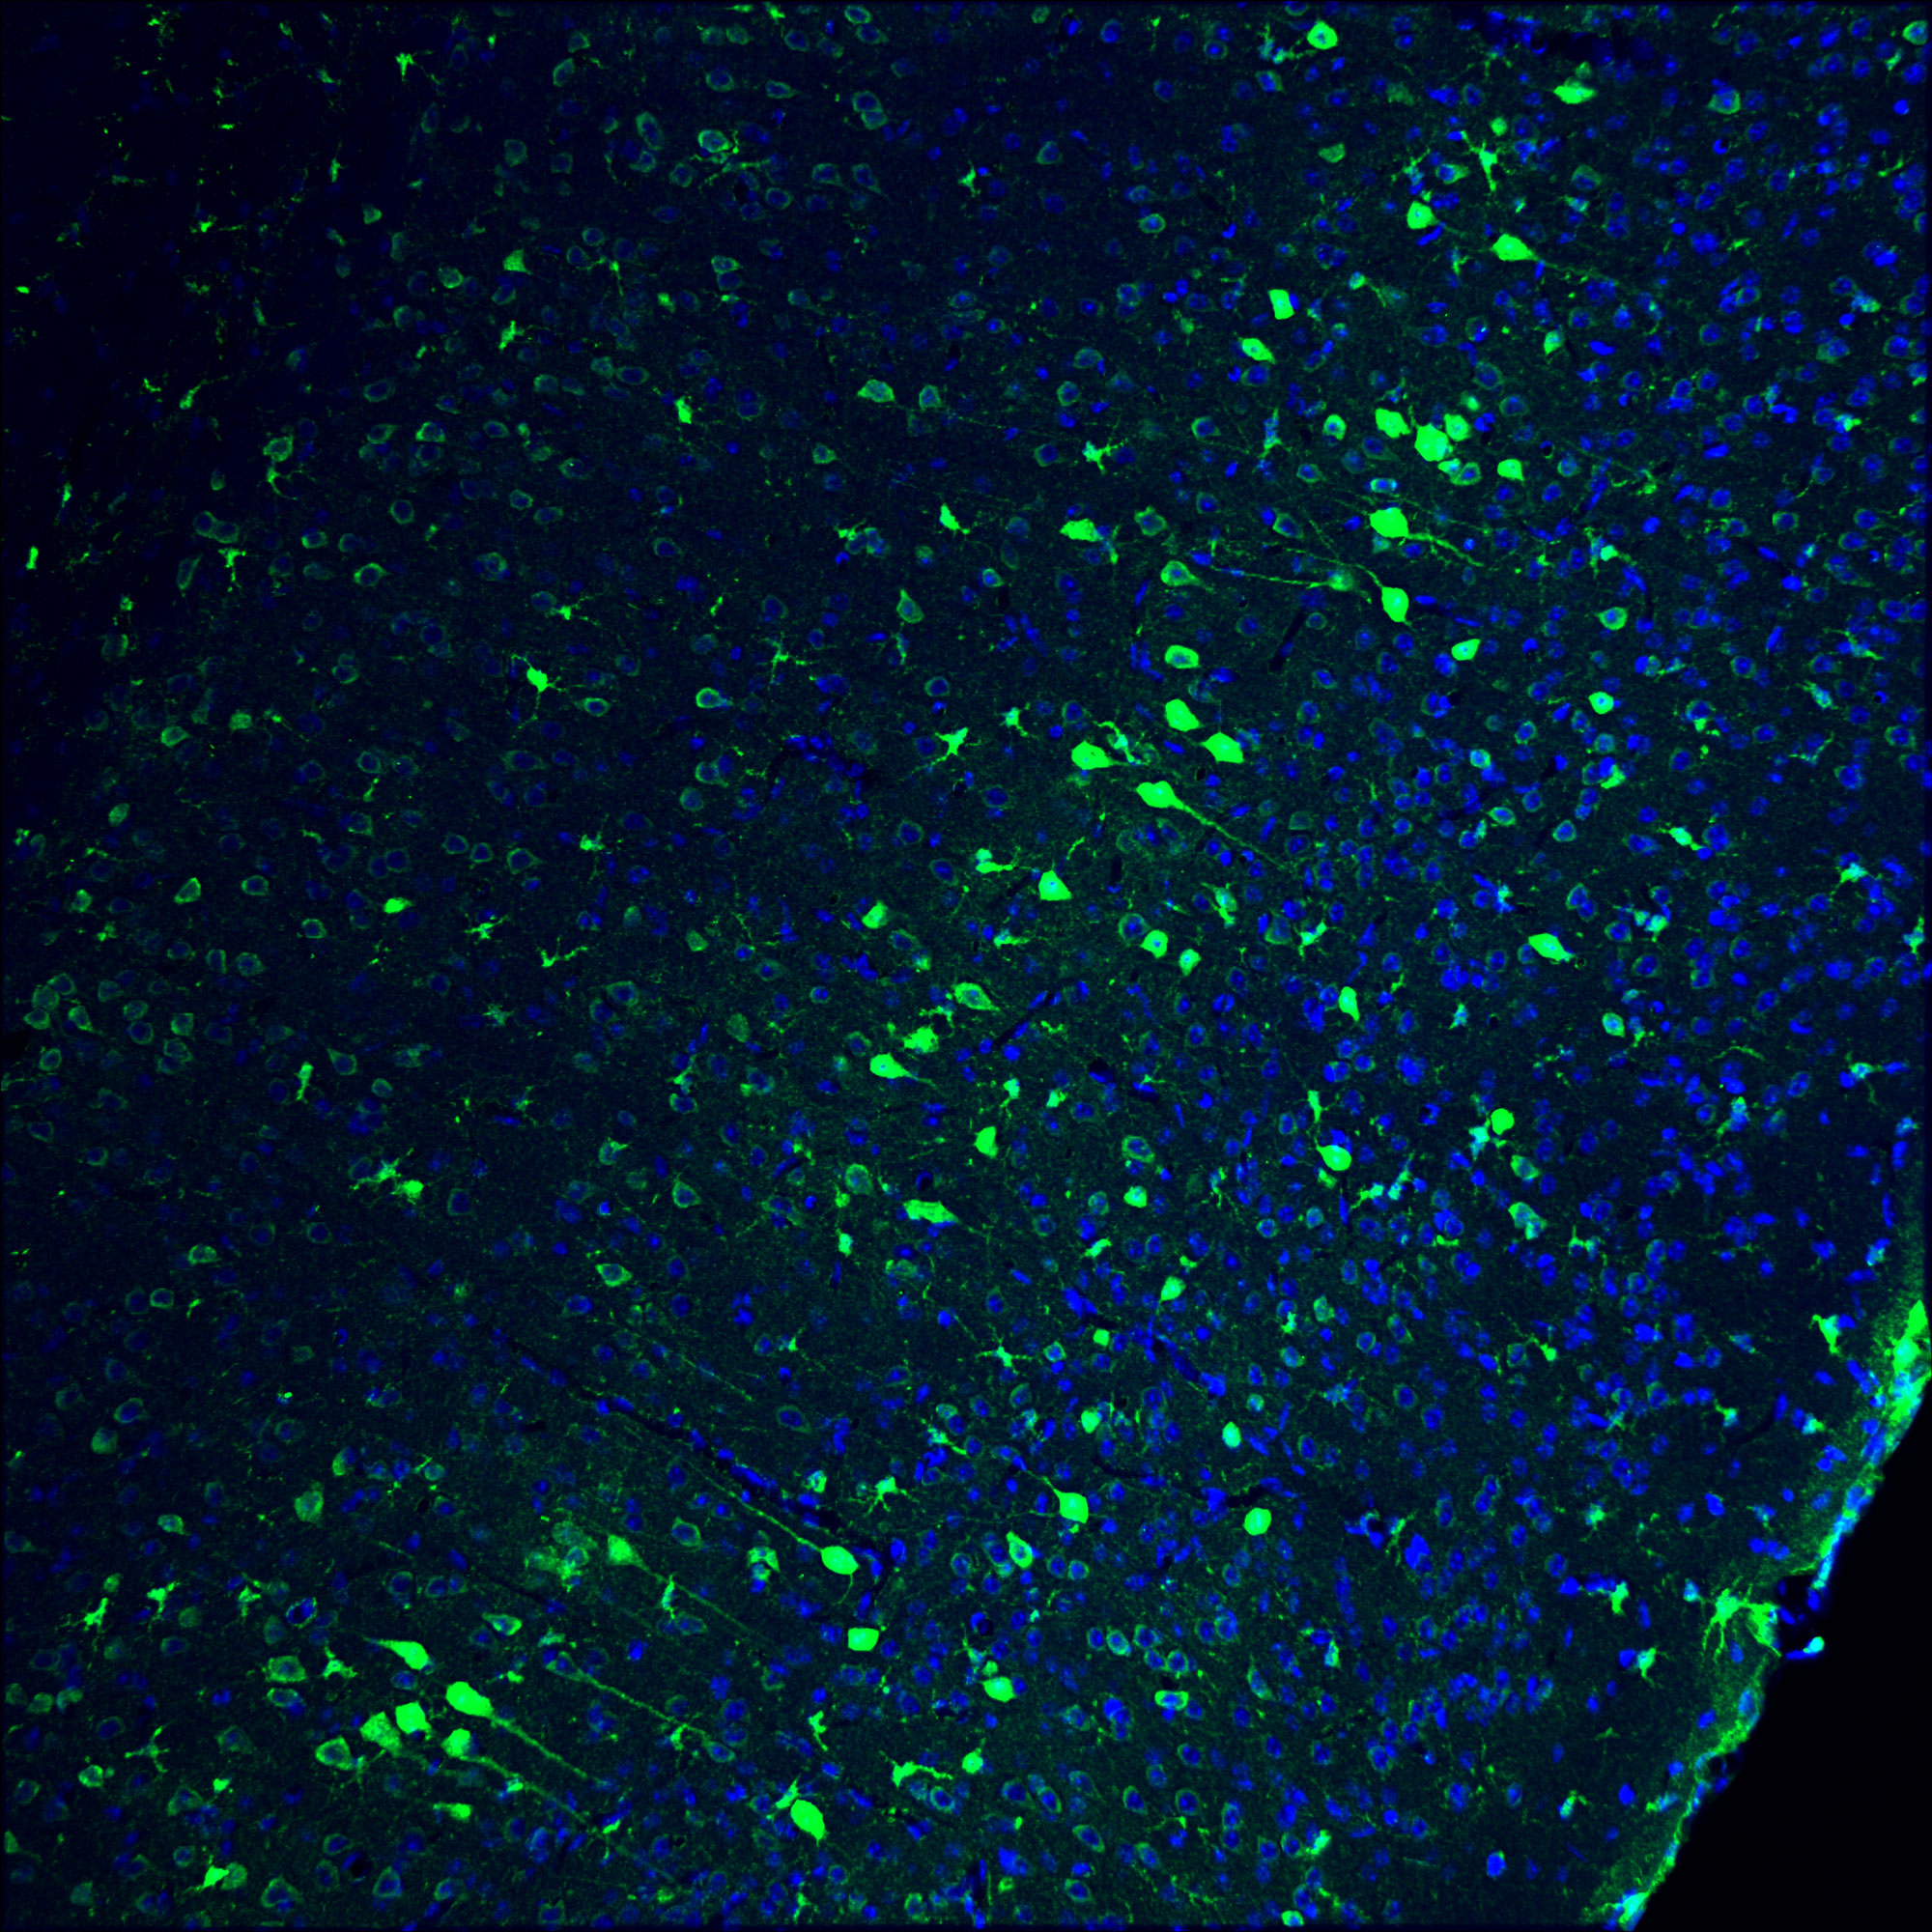 Gene-editing technology partially restores vision in blind animals